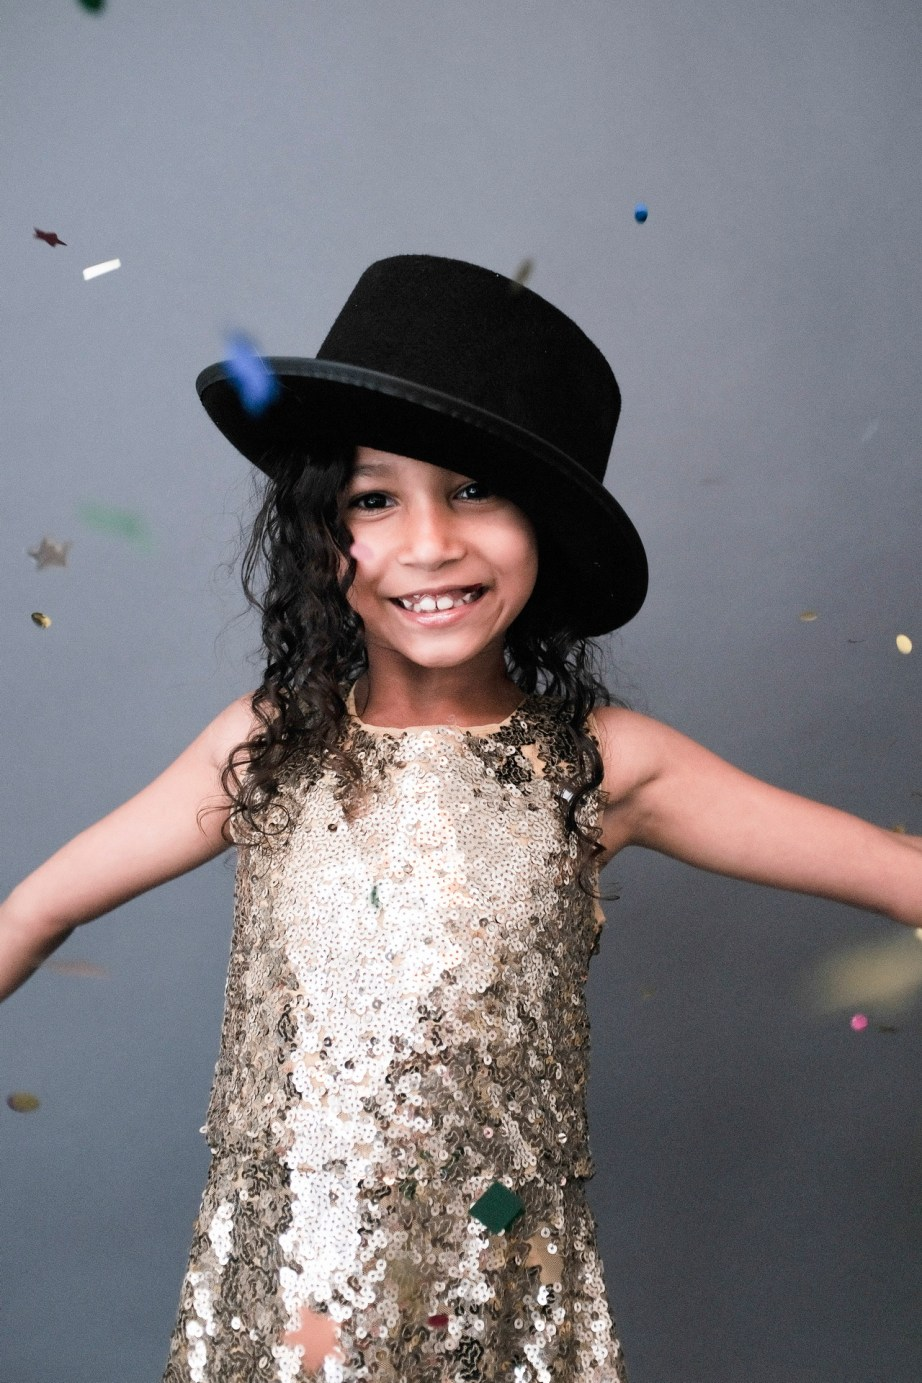 top kids childrens photographer studio orange county 07 nicole Caldwell